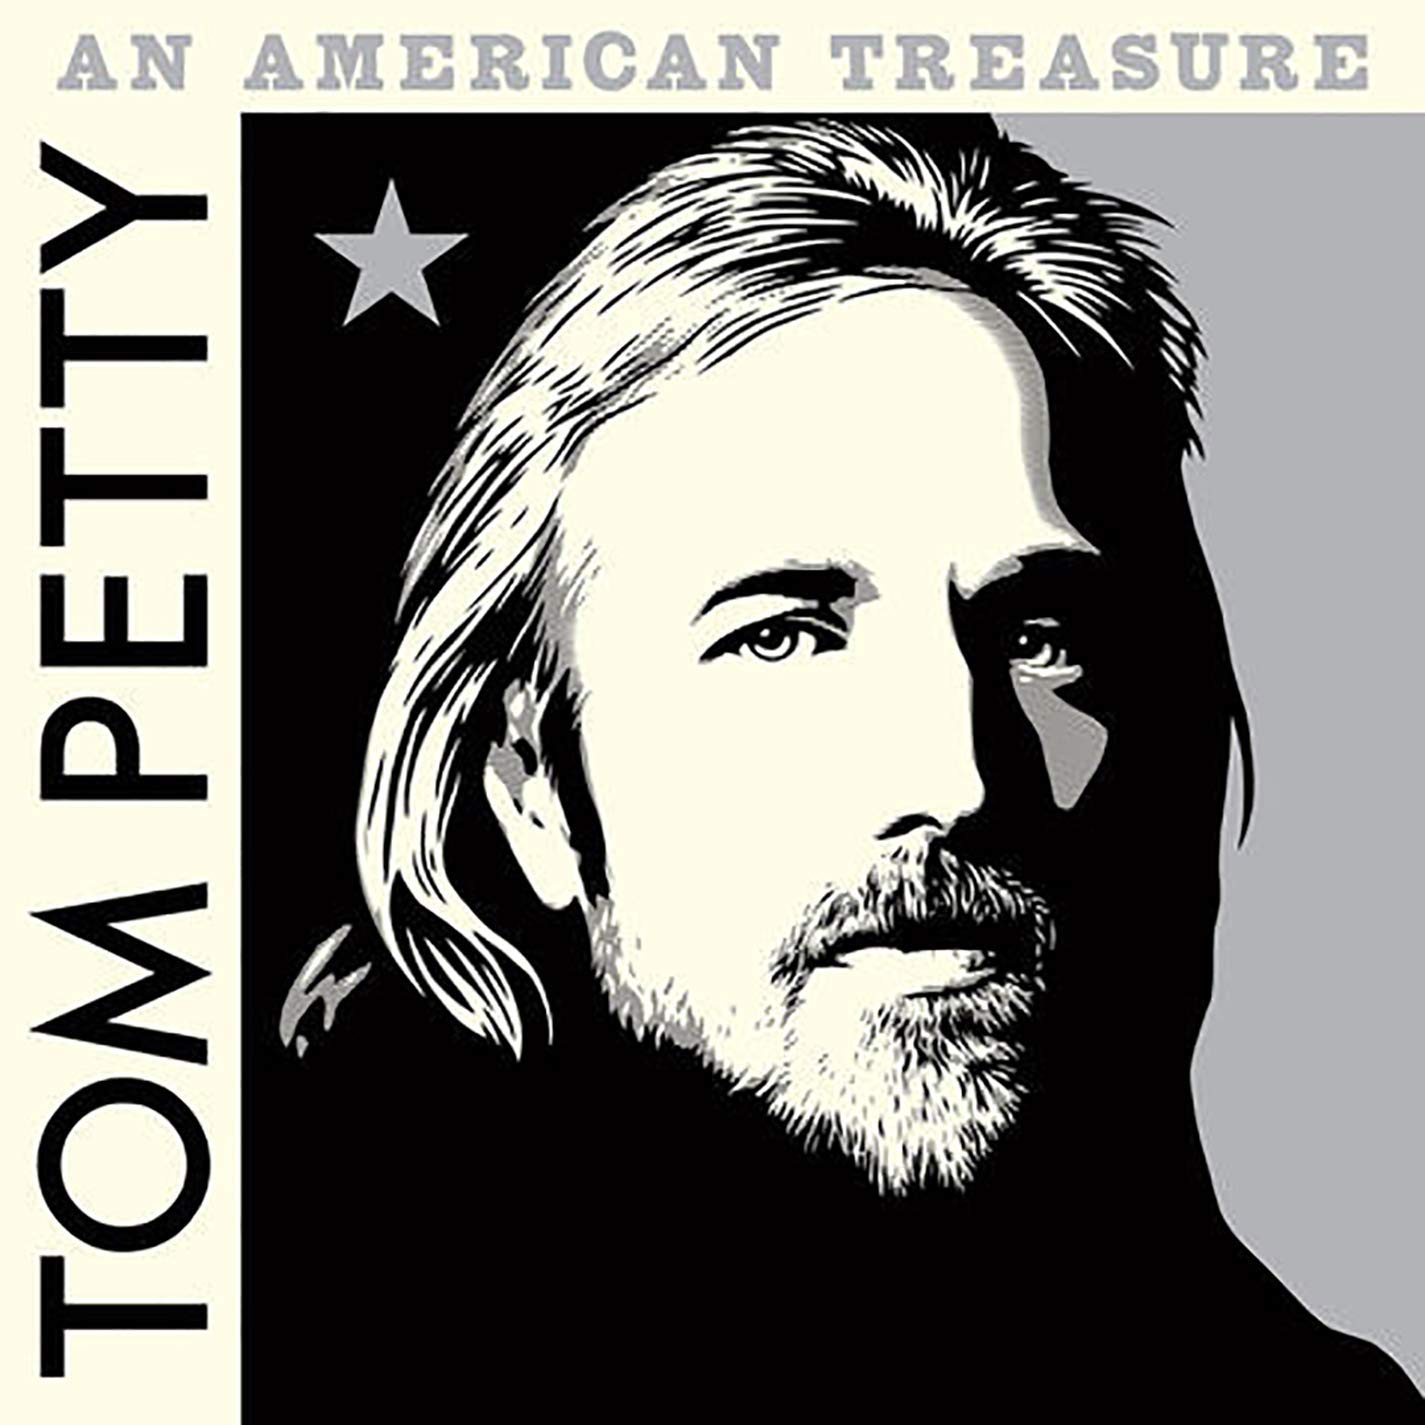 Caption: Tom Petty An American Treasure